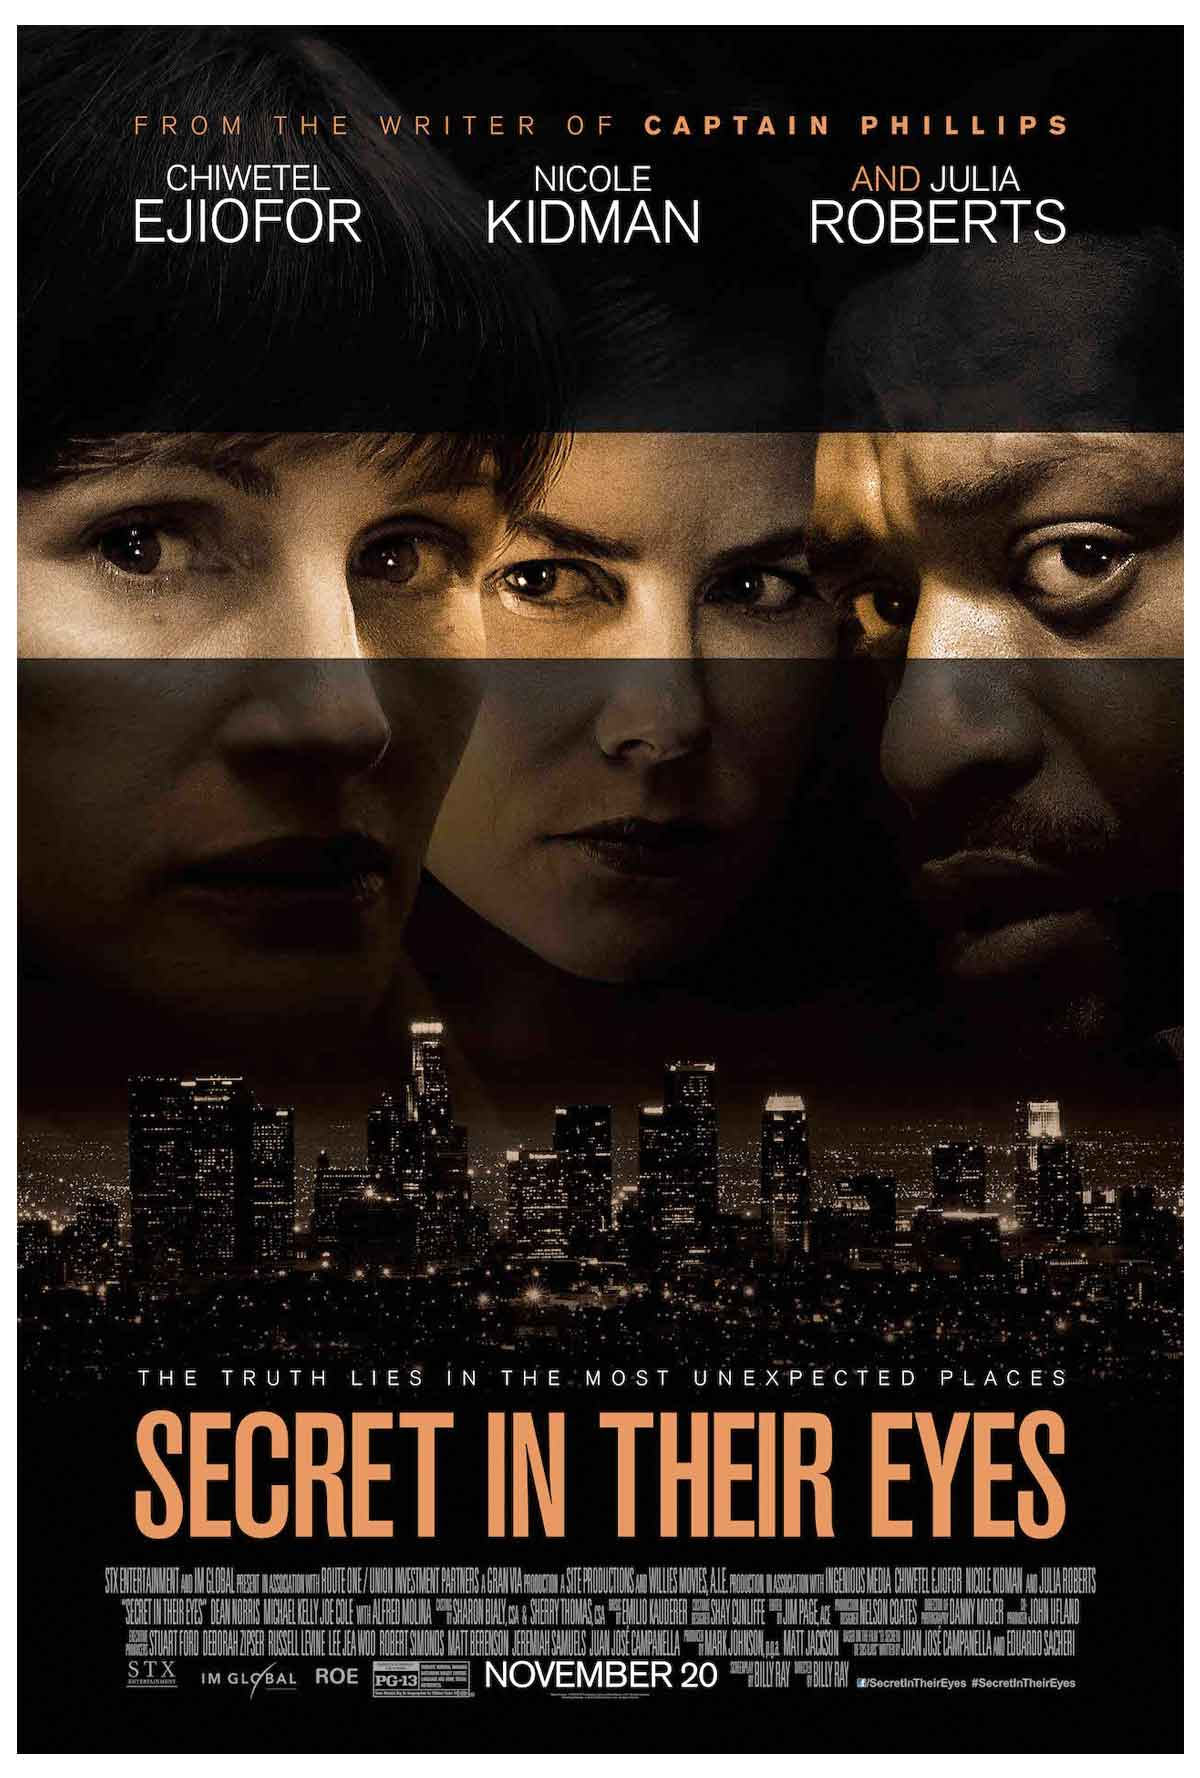 Yeni Secret in Their Eyes film afişi ve kadrosu belli oldu